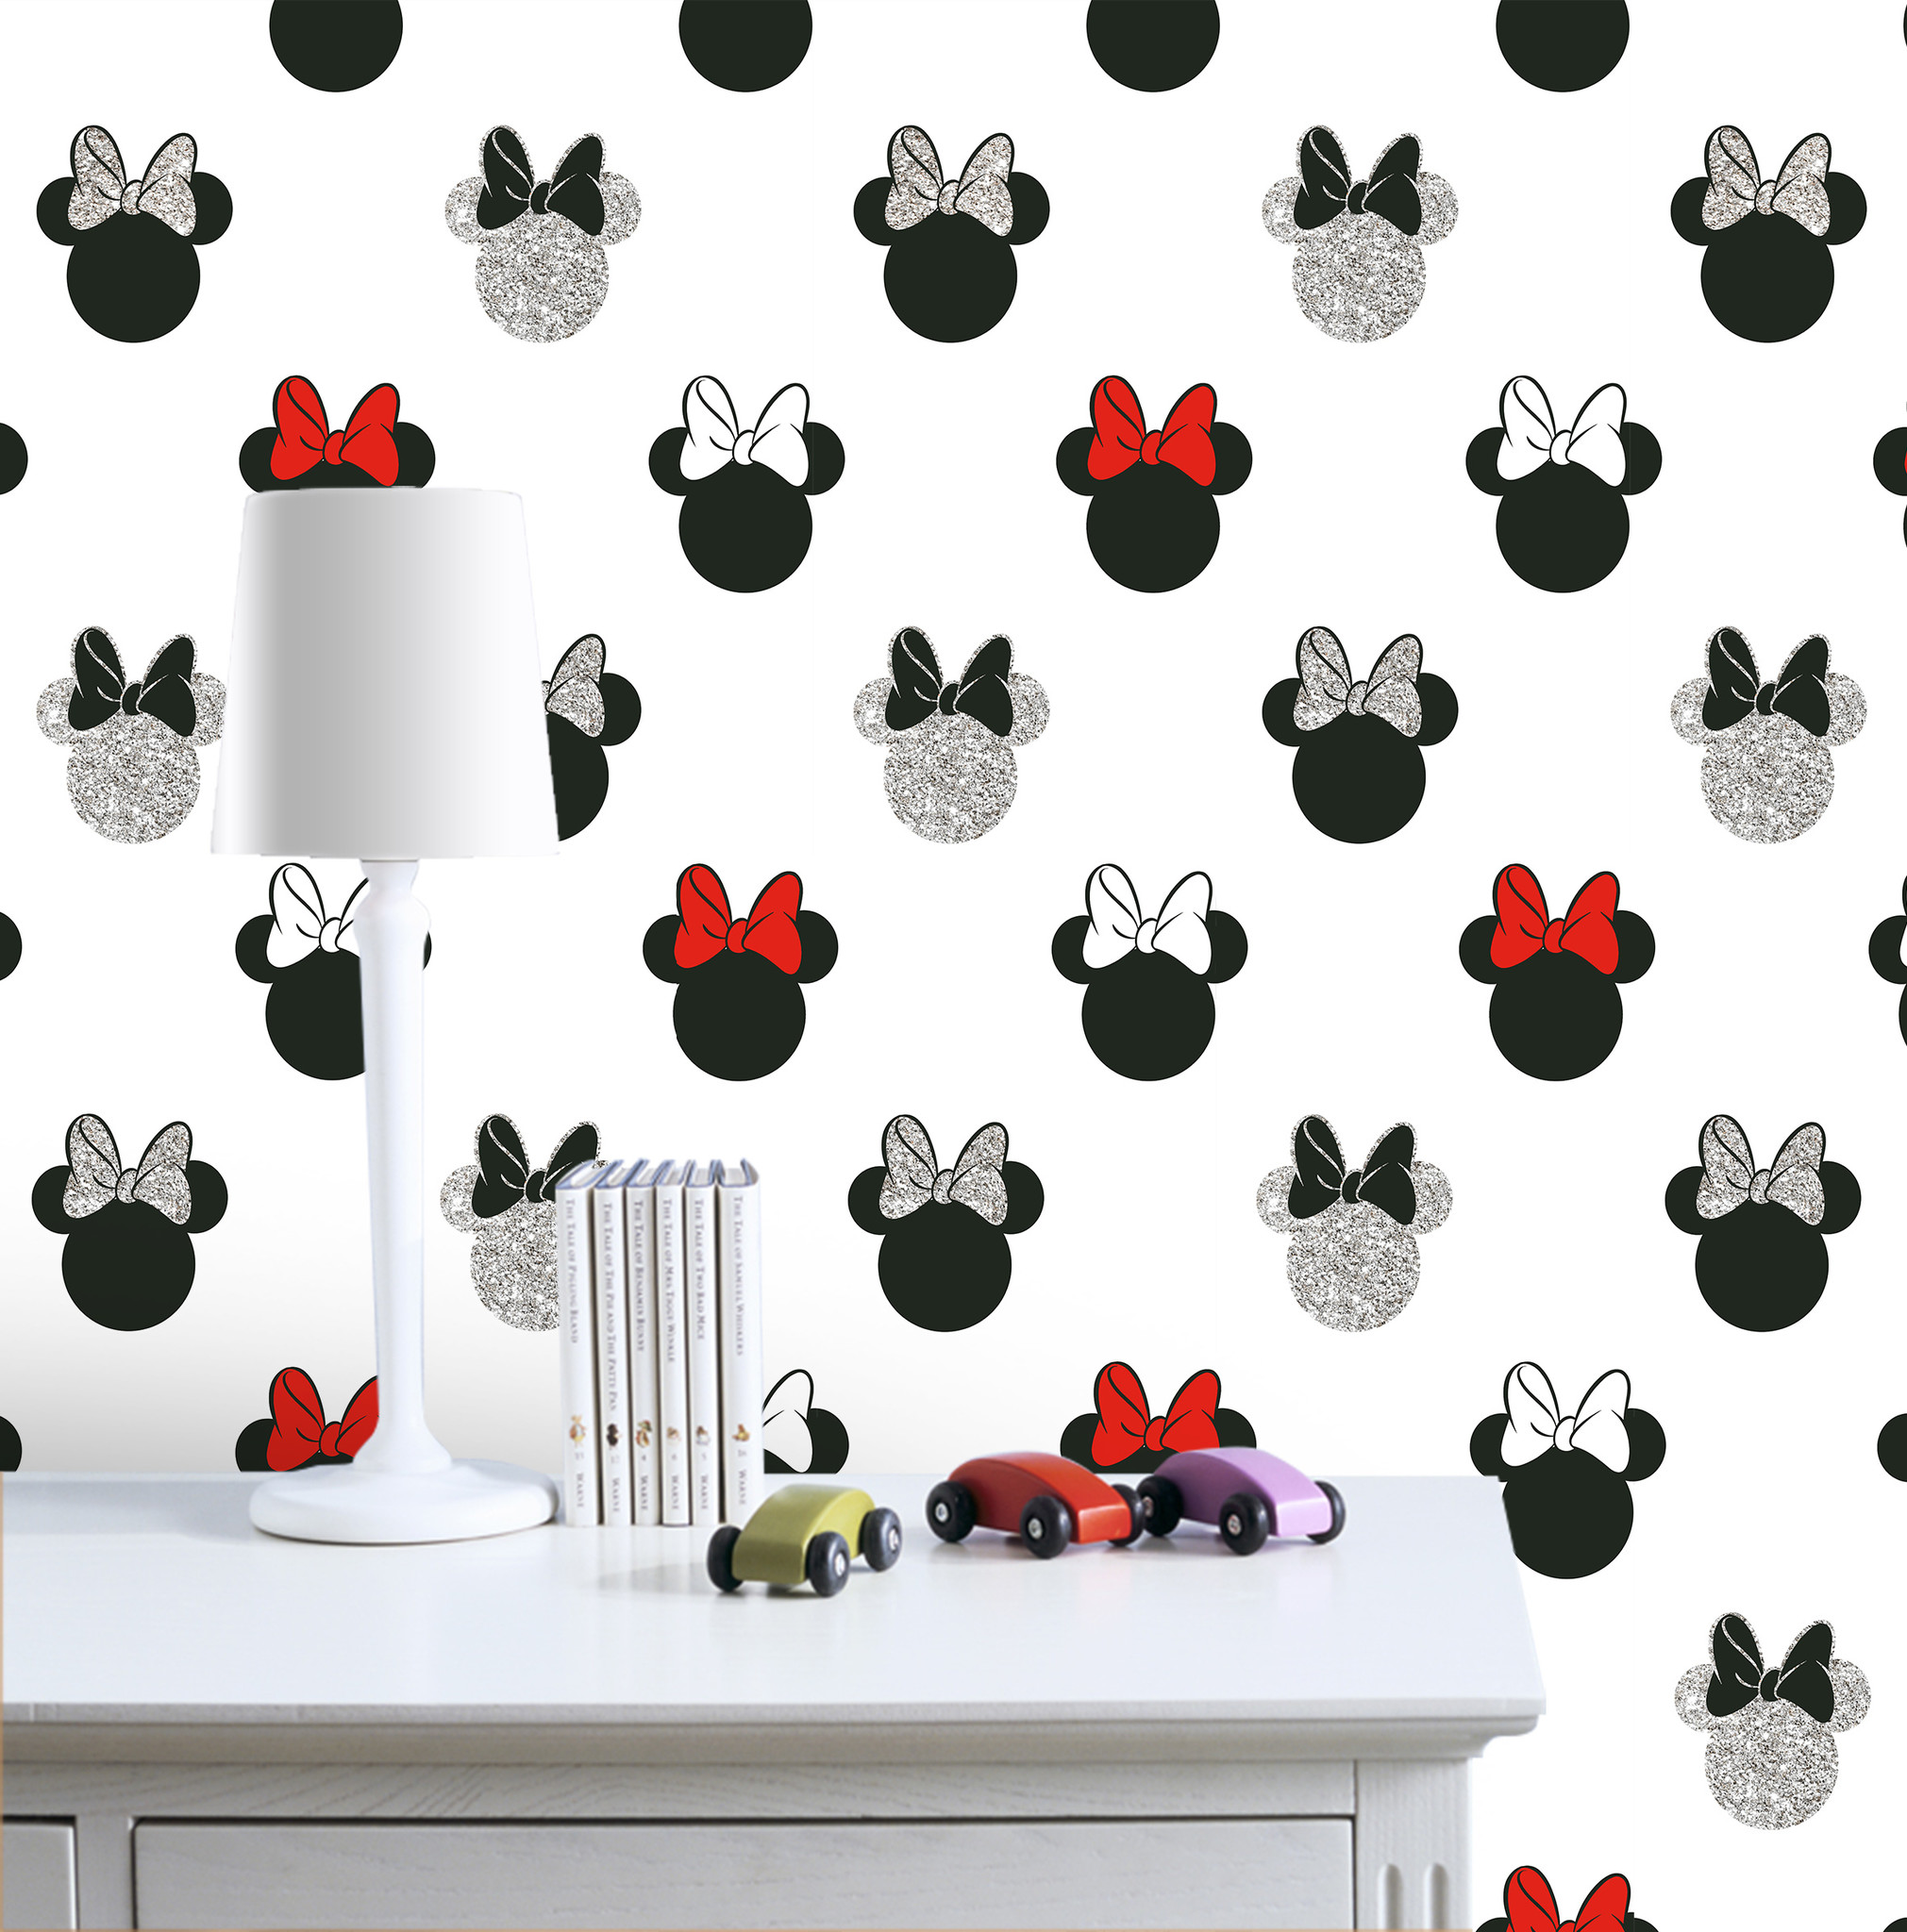 Disney Minnie Mouse Wallpaper with Sparks